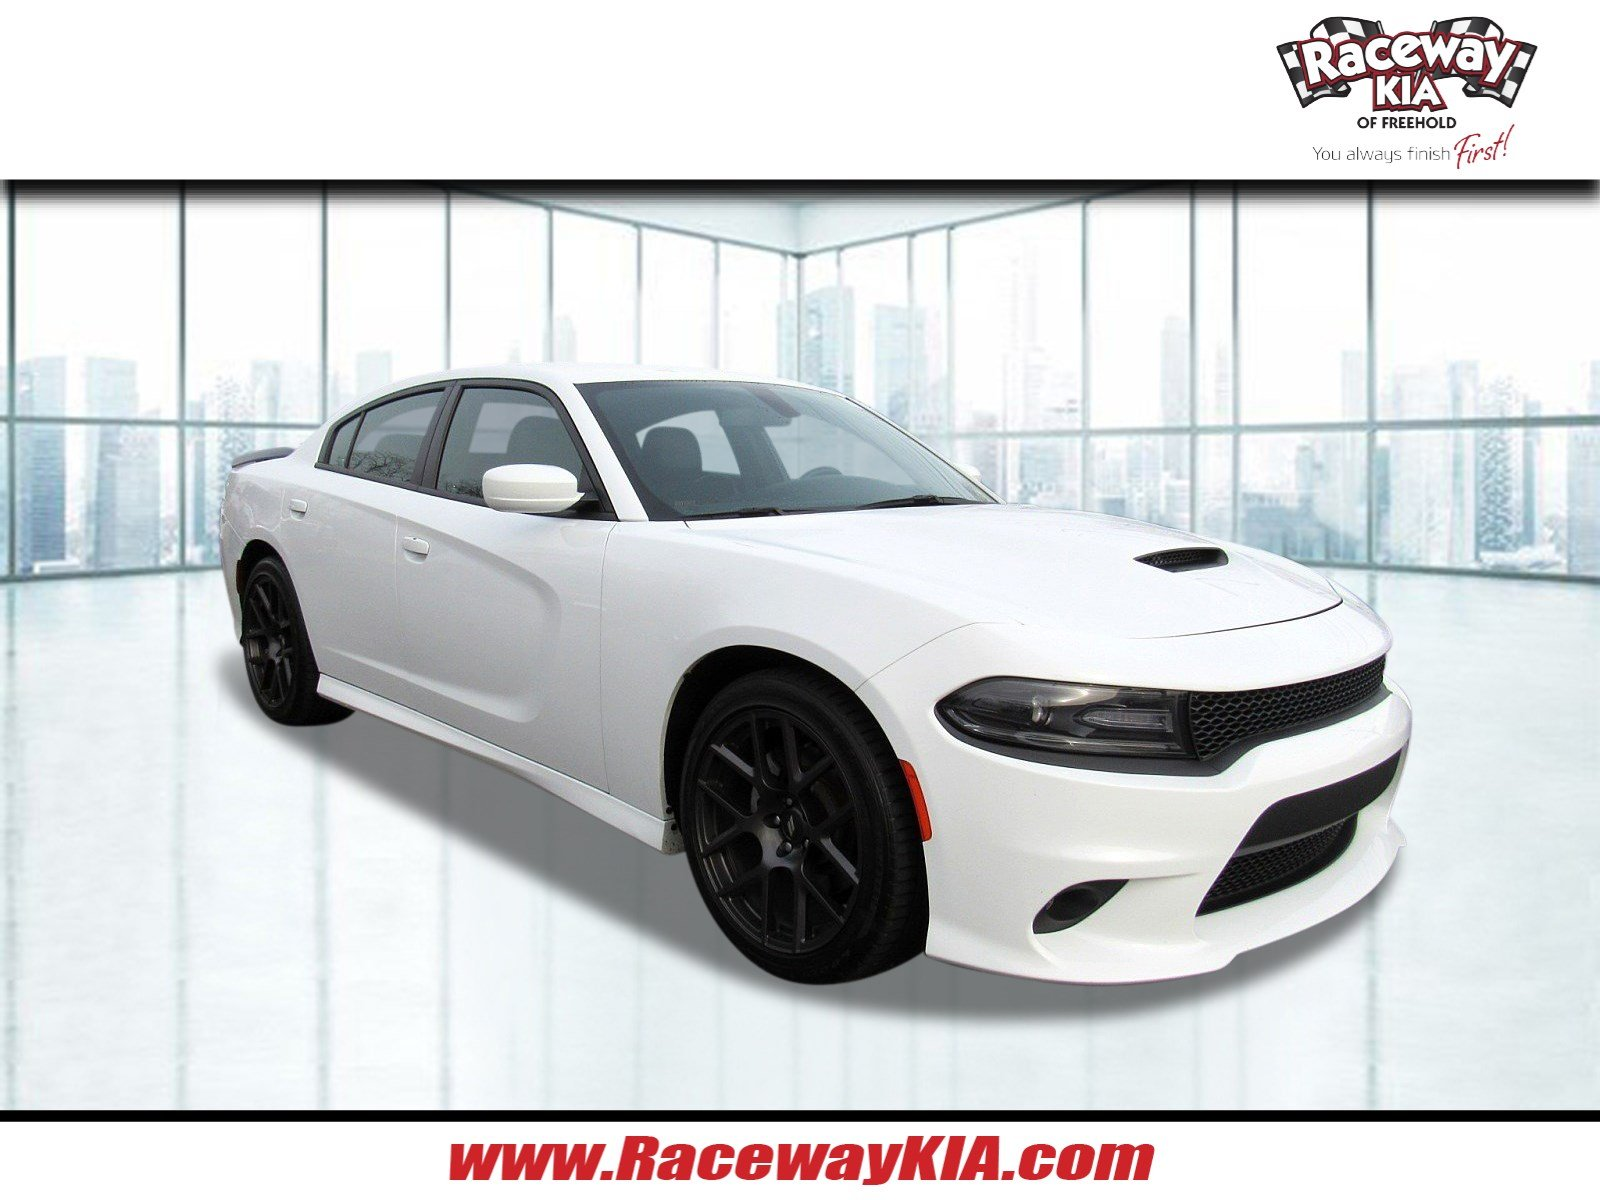 Pre-Owned 2017 Dodge Charger Daytona 340